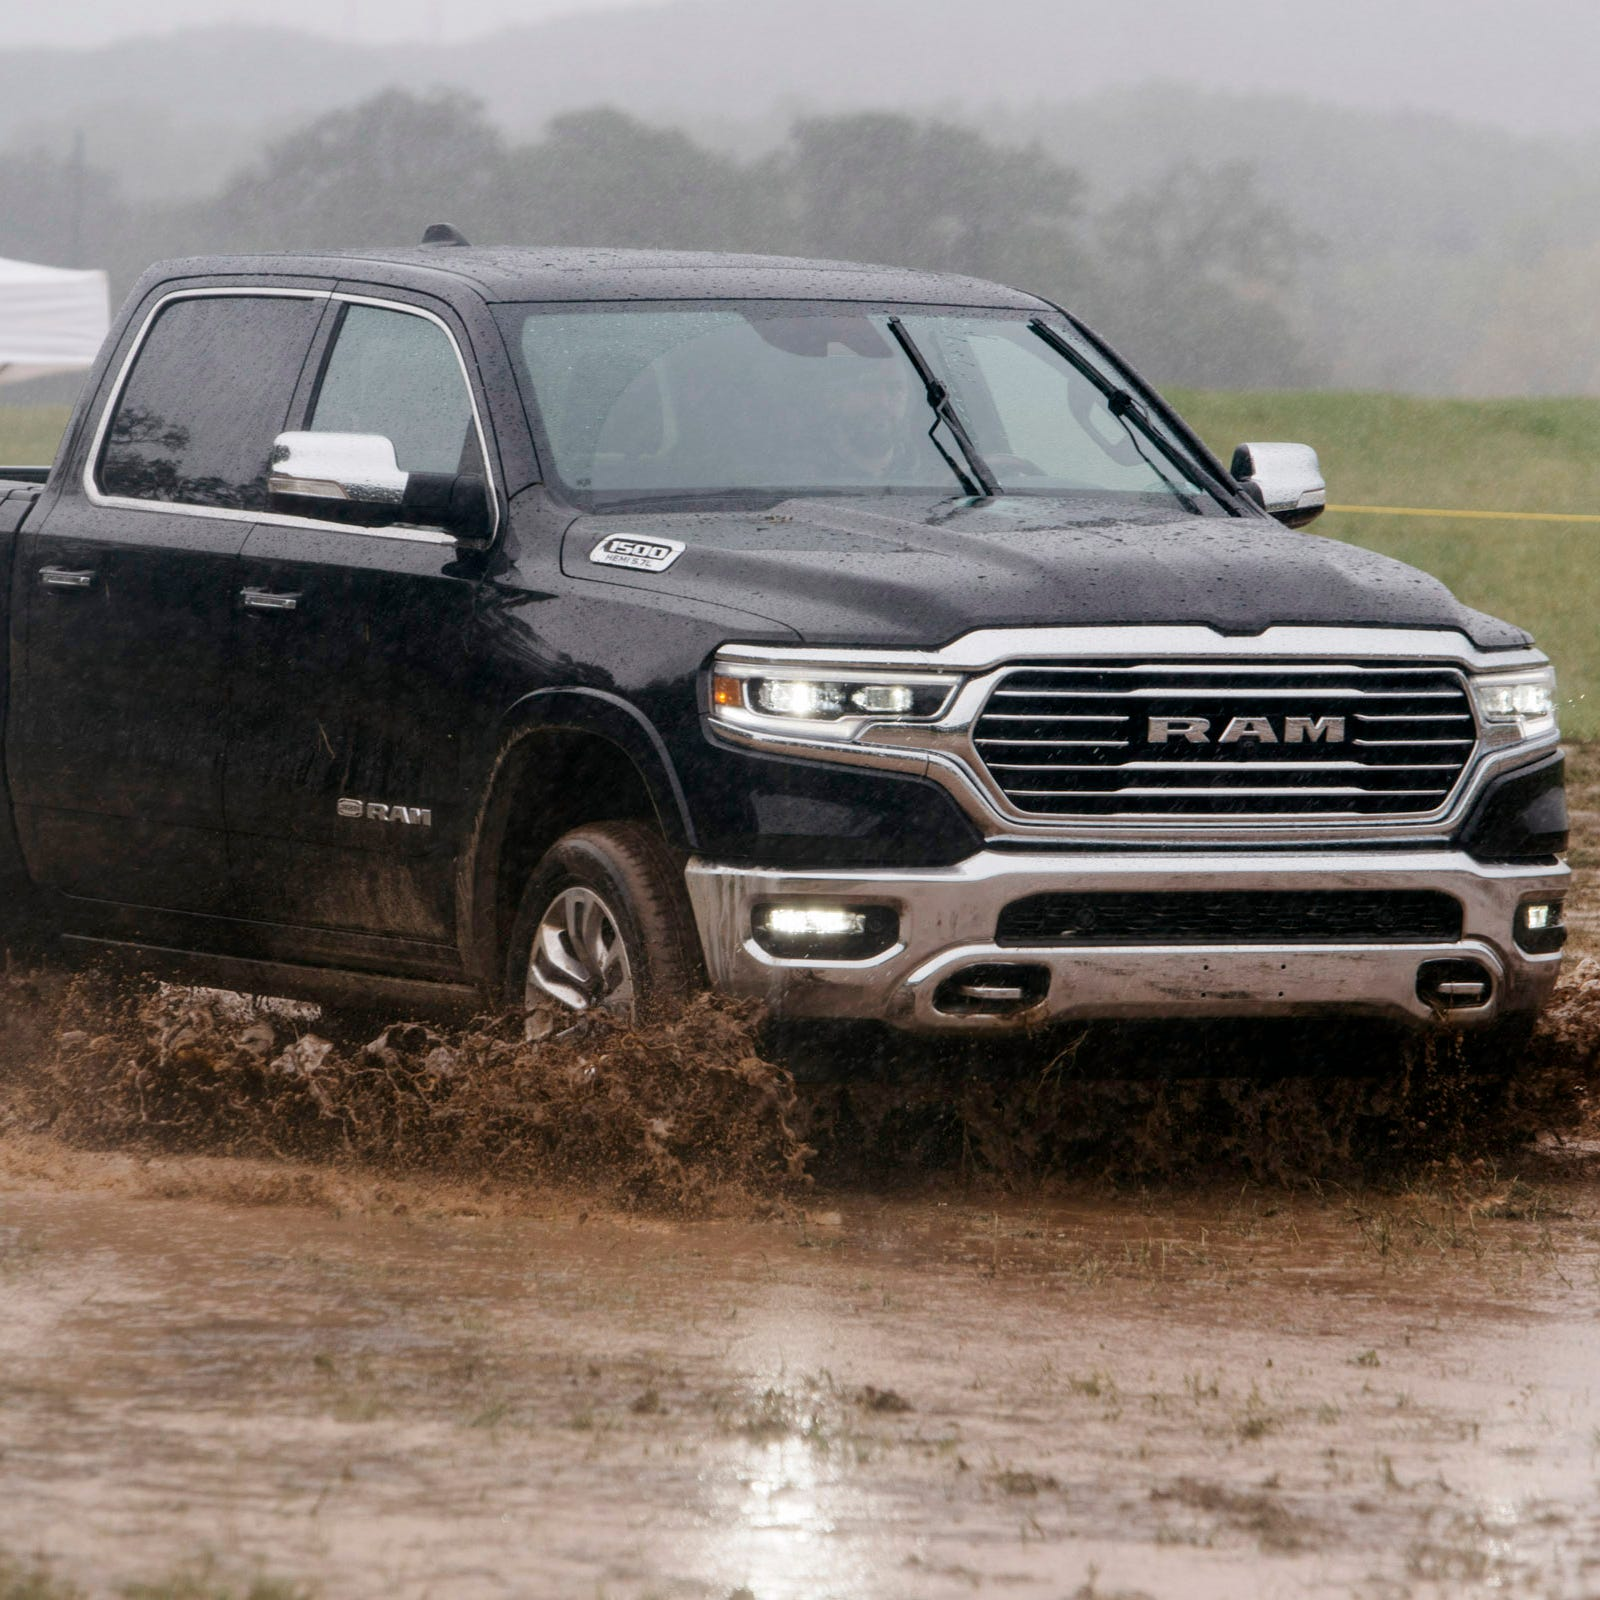 Ford F-150 and Silverado may have ducked Ram in Texas pickup showdown